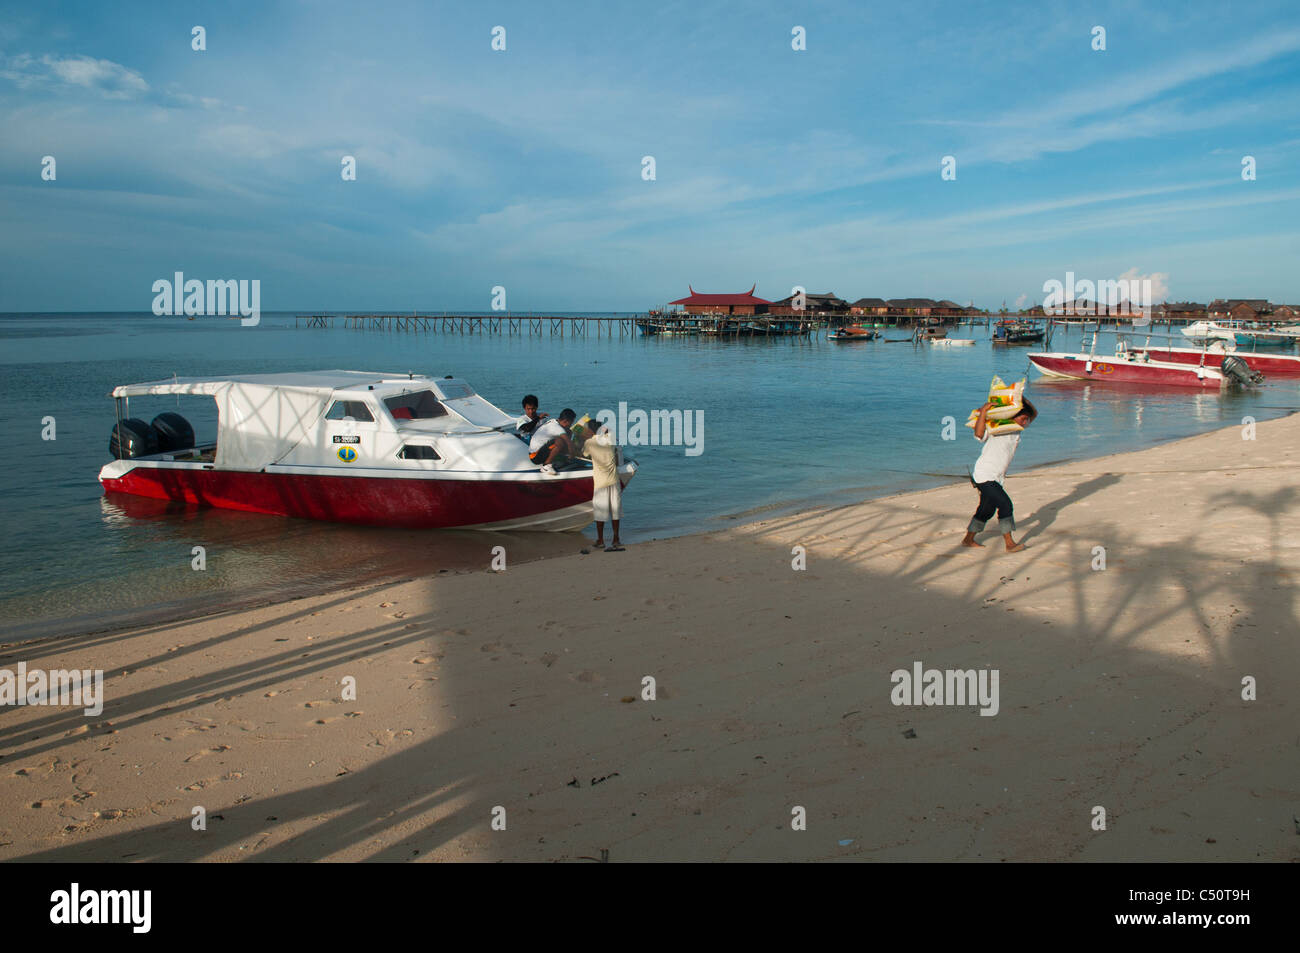 boats on the beach on Mabul Island, Borneo, Malaysia - Stock Image